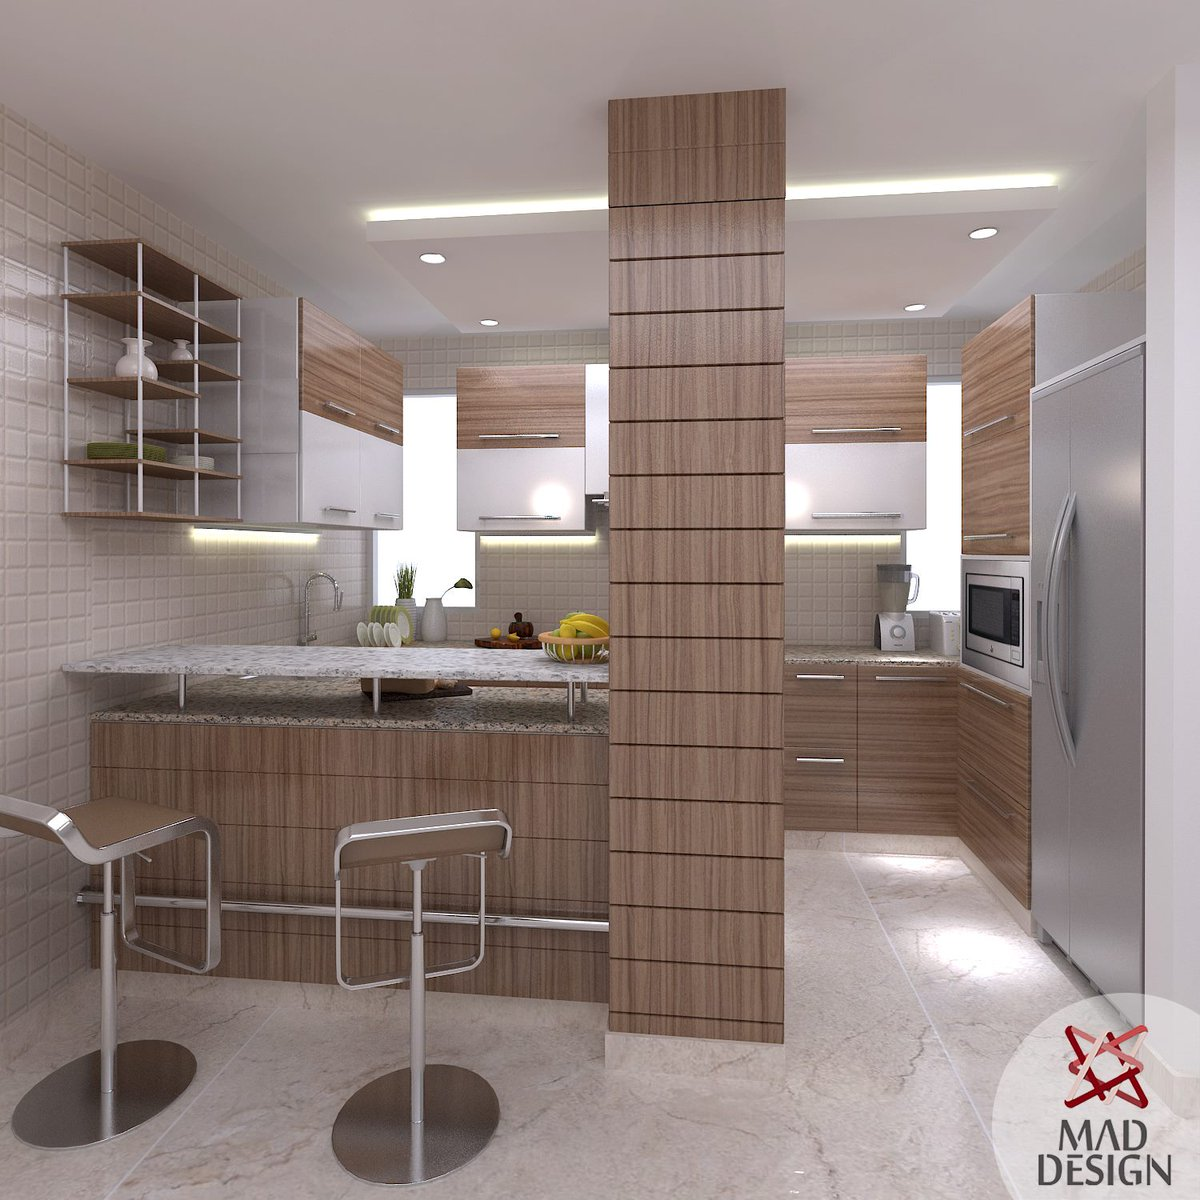 Mad Design On Twitter Modular Kitchen Design With An Extended Breakfast Counter For A Residence At Sarita Vihar Interior Designing Delhi India Https T Co Dglb3h9qey